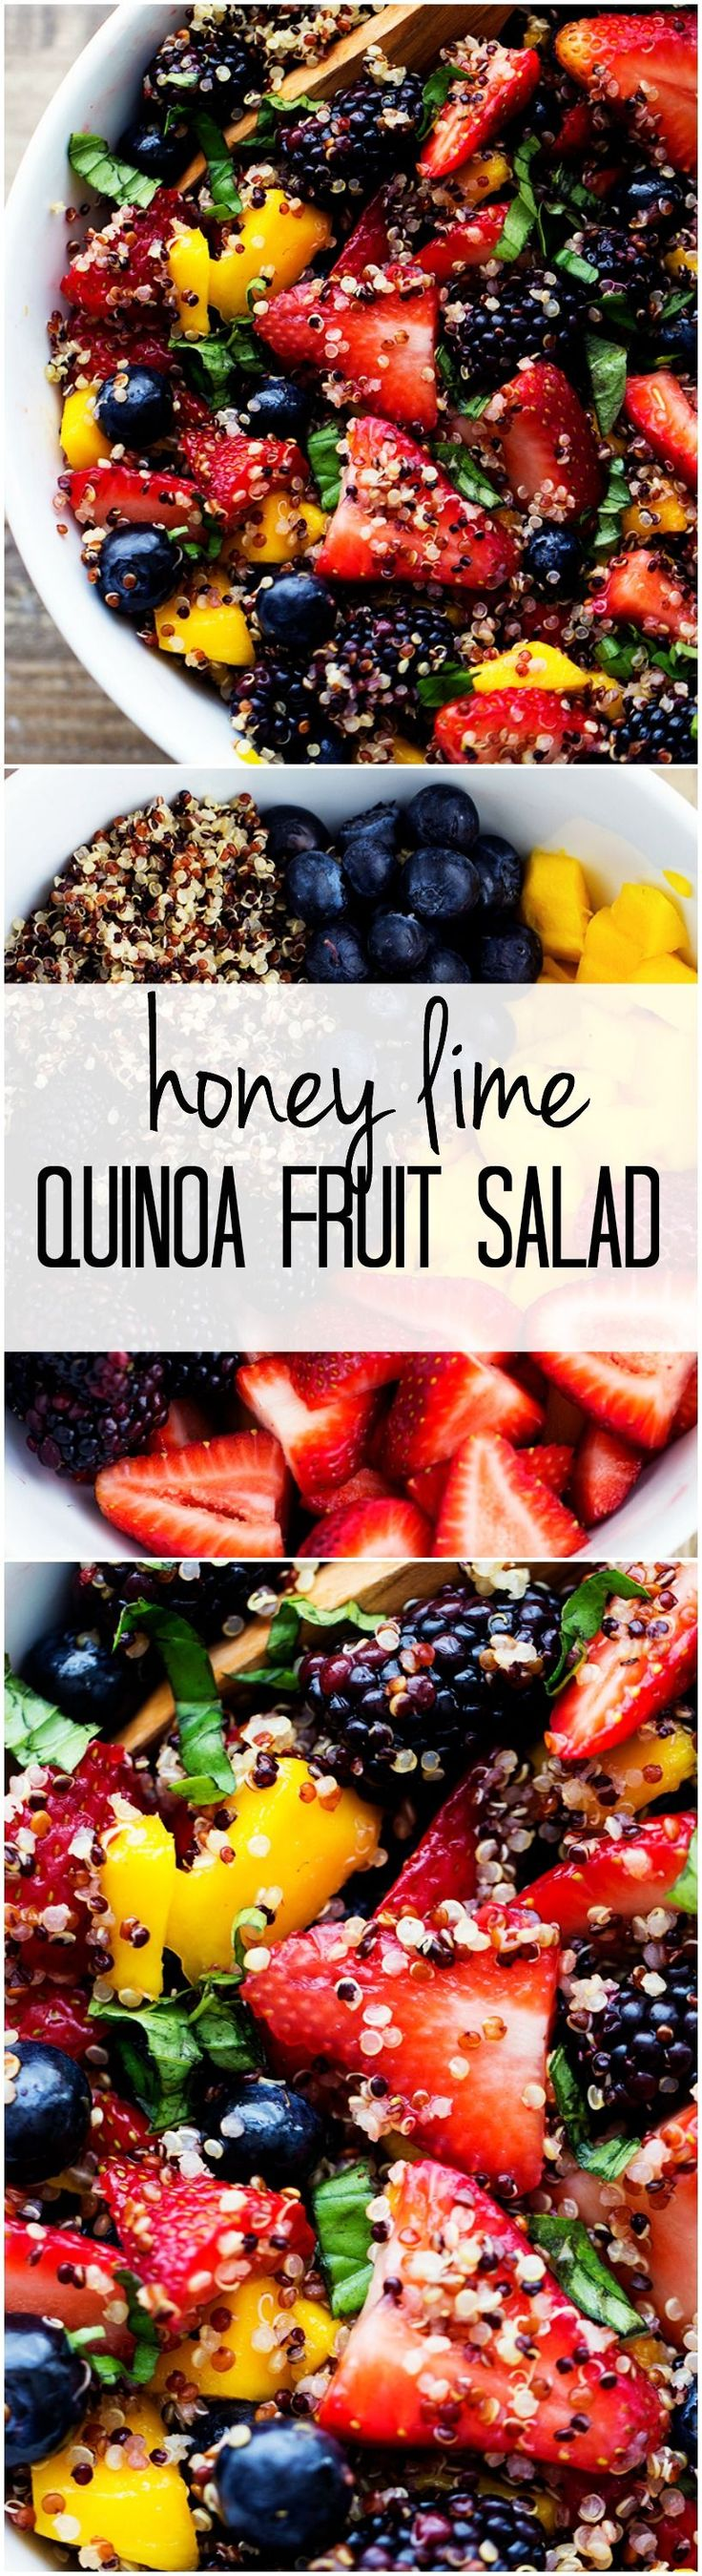 This Honey Lime Quinoa Fruit Salad is SO refreshing with fresh fruit and the honey lime